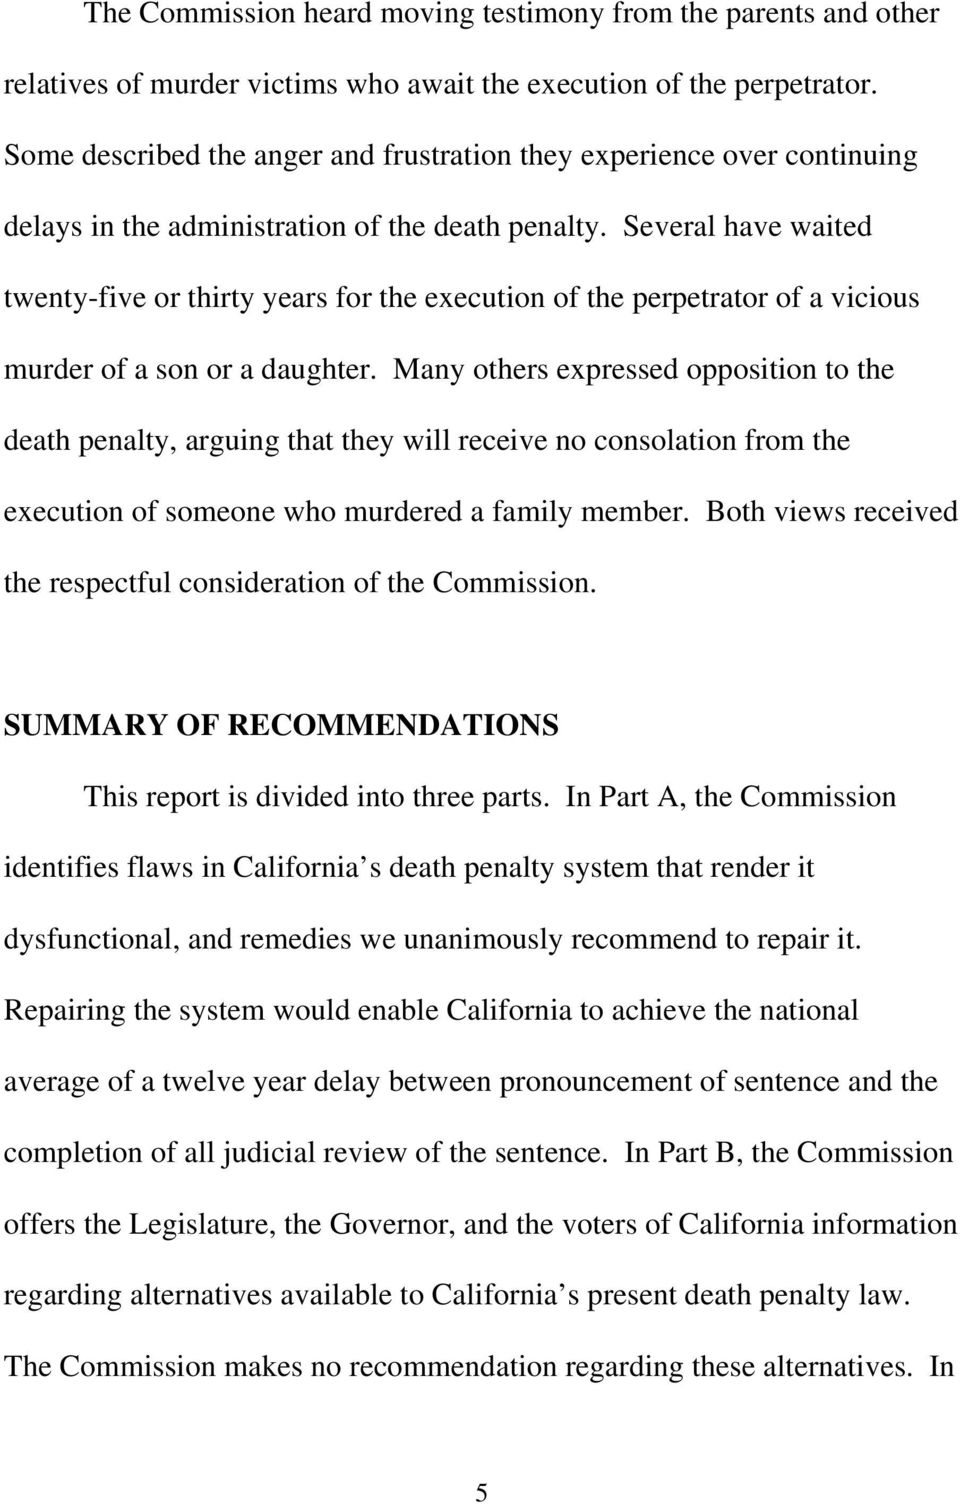 Several have waited twenty-five or thirty years for the execution of the perpetrator of a vicious murder of a son or a daughter.